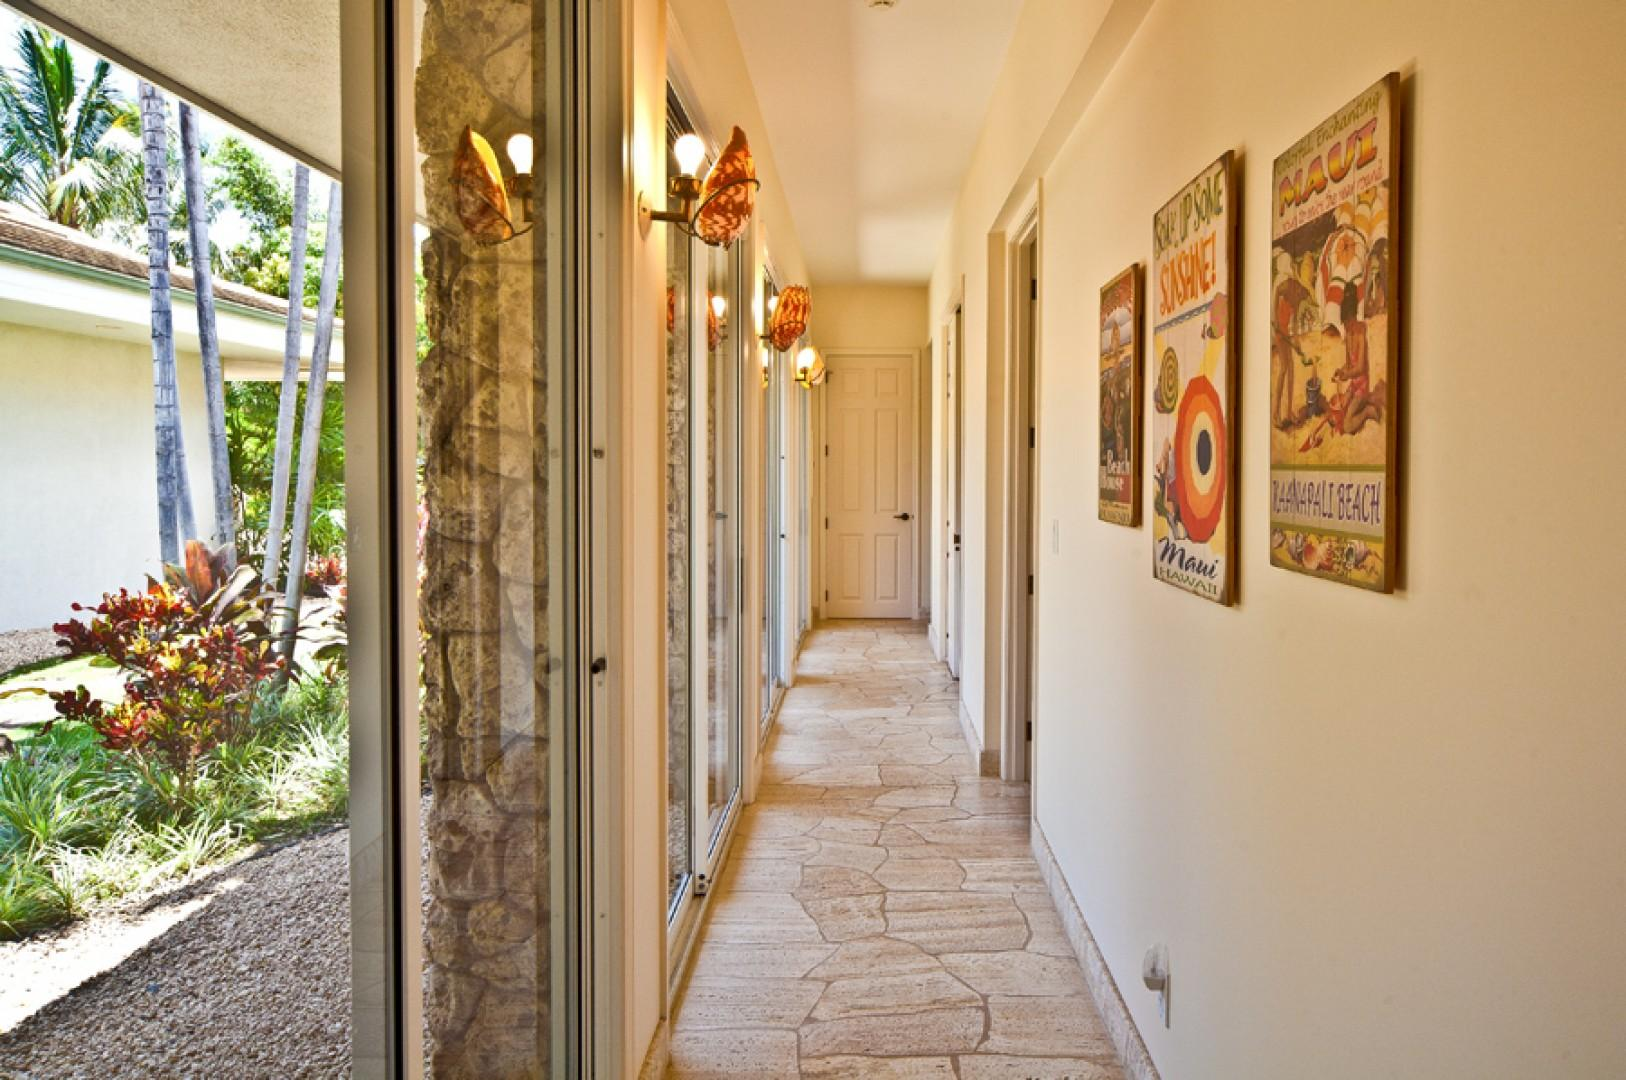 Sea Shells Beach House - Inner Courtyard Hallway Leading To Guest Bedrooms